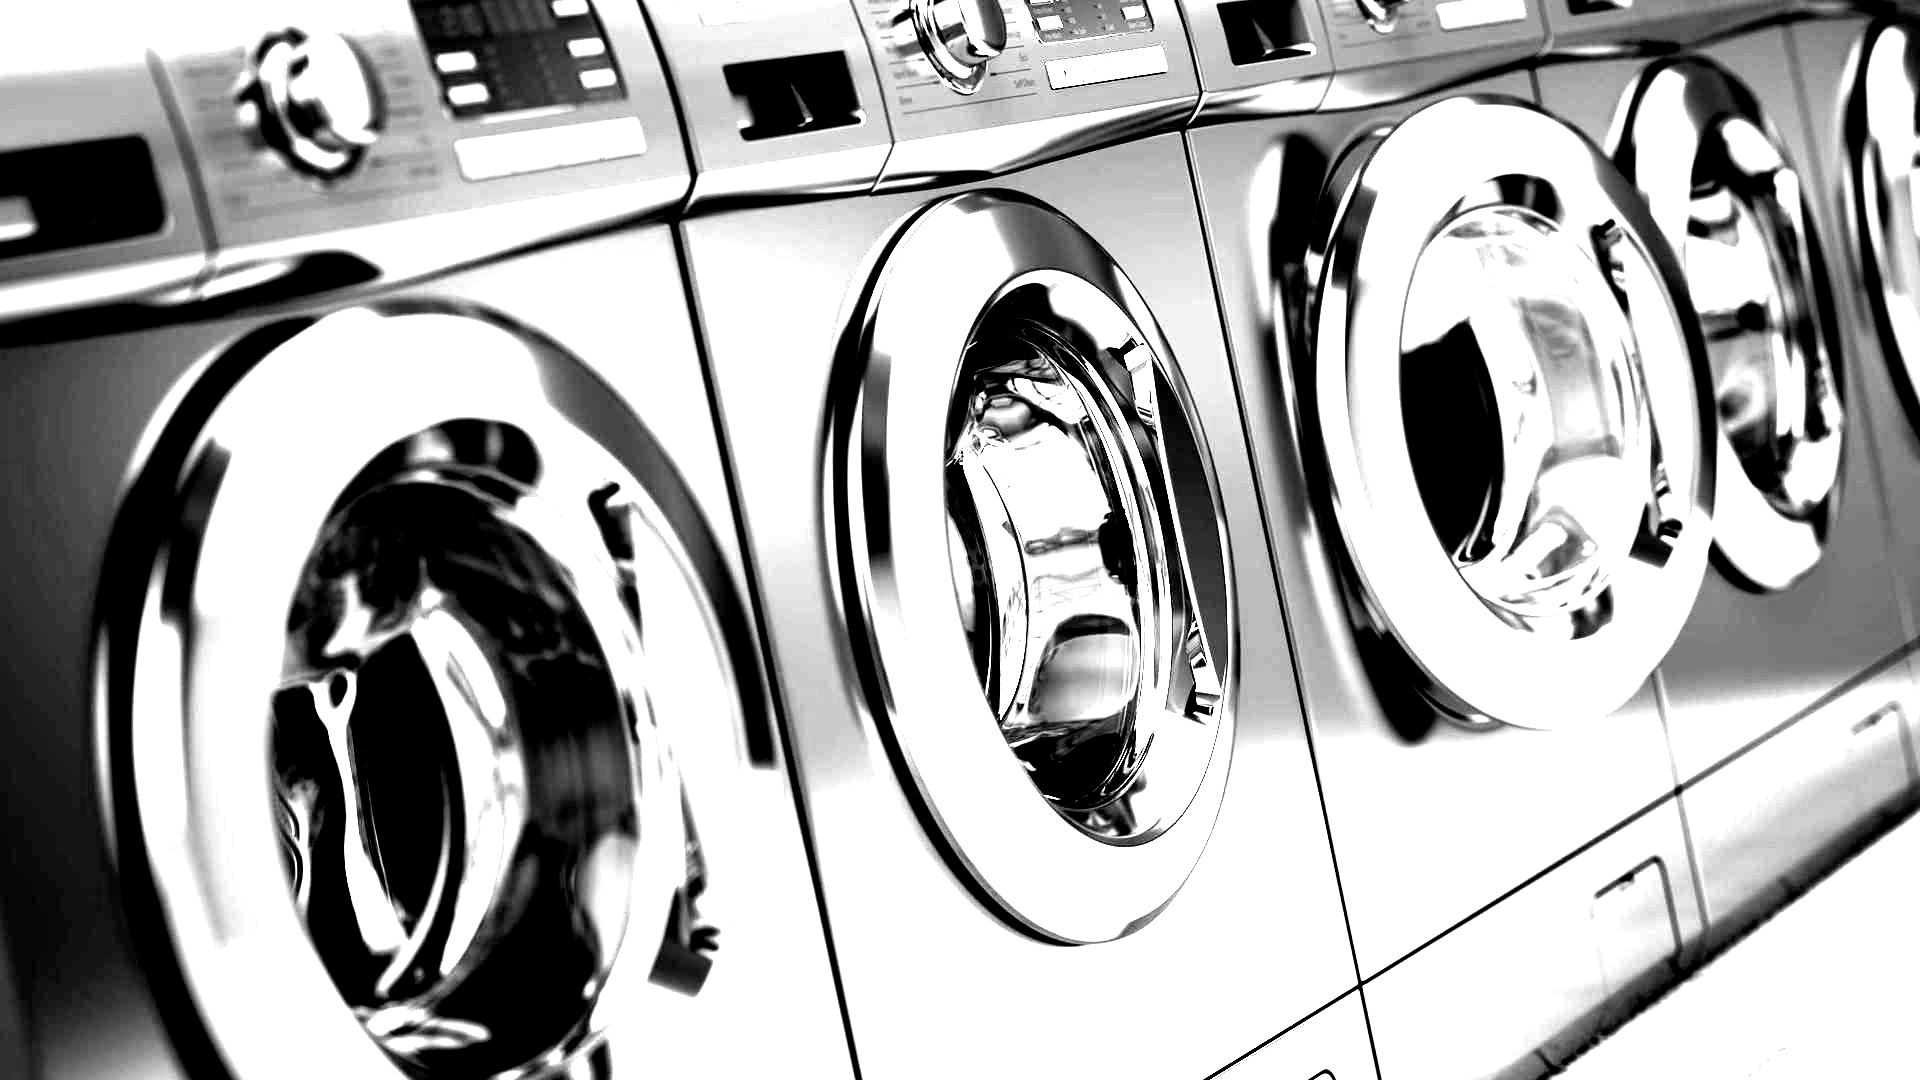 Domestic-and-commercial-appliances-OPT2